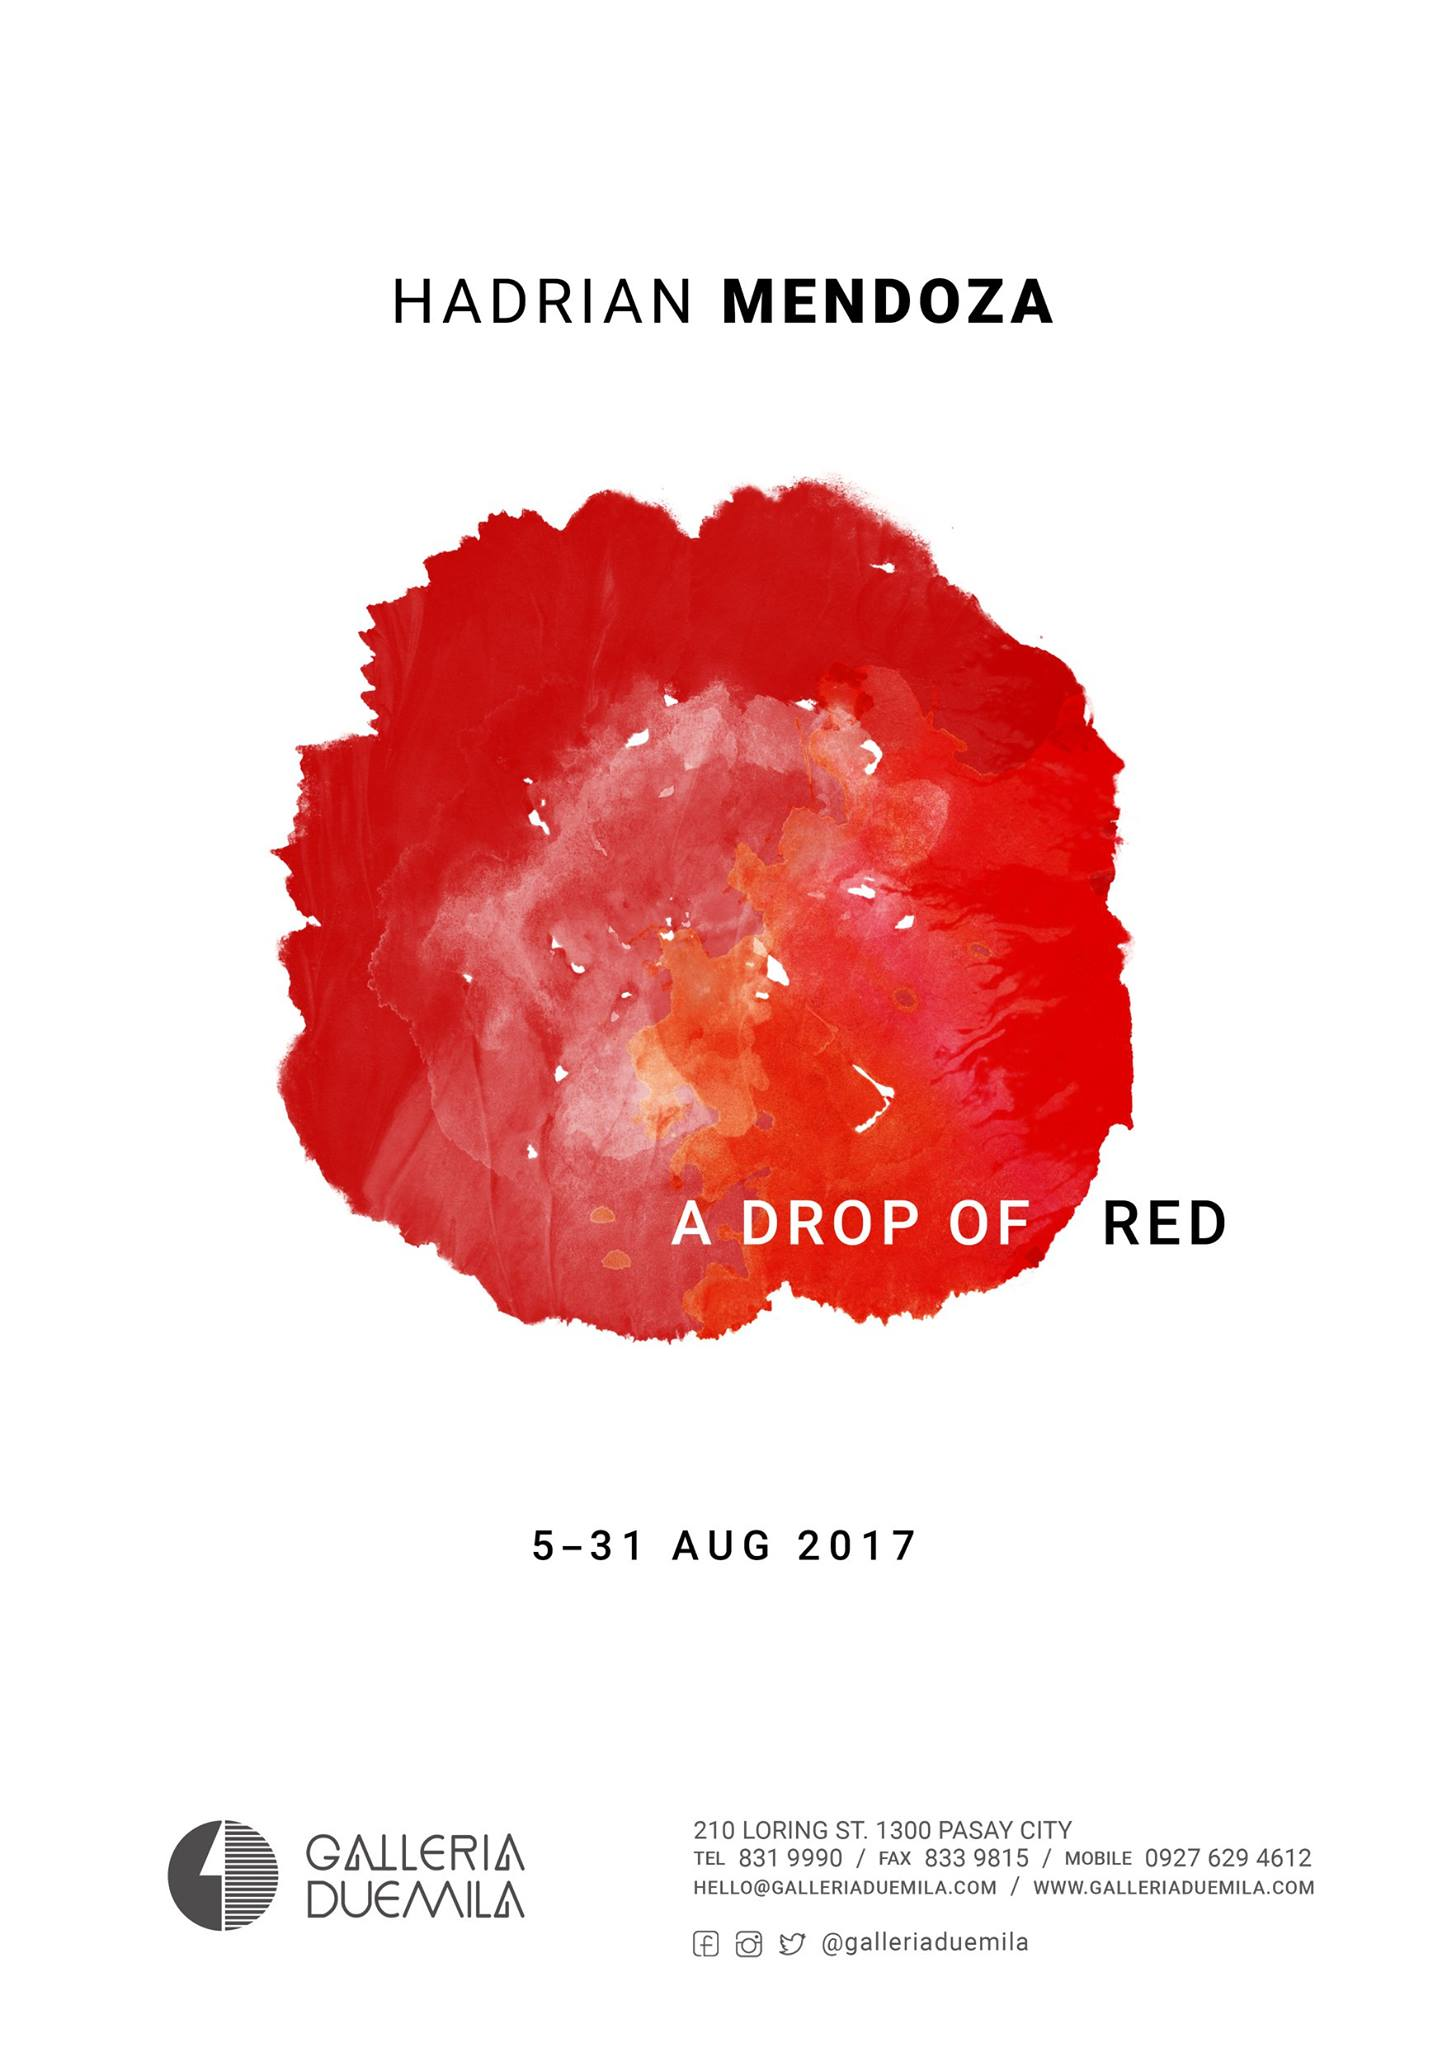 Hadrian Mendoza's A Drop of Red Public · Hosted by Galleria Duemila Inc Saturday, August 5 at 4 PM - 9 PM Next Week · 26–30° Heavy Thunderstorm pin Show Map Galleria Duemila Inc 210 Loring Street, 1300 Pasay City, Philippines About Discussion 5 Going · 14 Interested Galleria Duemila Inc Page Liked · July 12 · Hadrian Mendoza A Drop of Red August 5 - 31 2017 Opening Reception: August 5, Saturday at 4pm. 210 Loring St. 1300 Pasay City See you all here! :) Follow us on Instagram for live updates and other gallery shenanigans: @galleriaduemila #artgallery #artph #manilaartscene #ceramics #hadrianmendozaworks